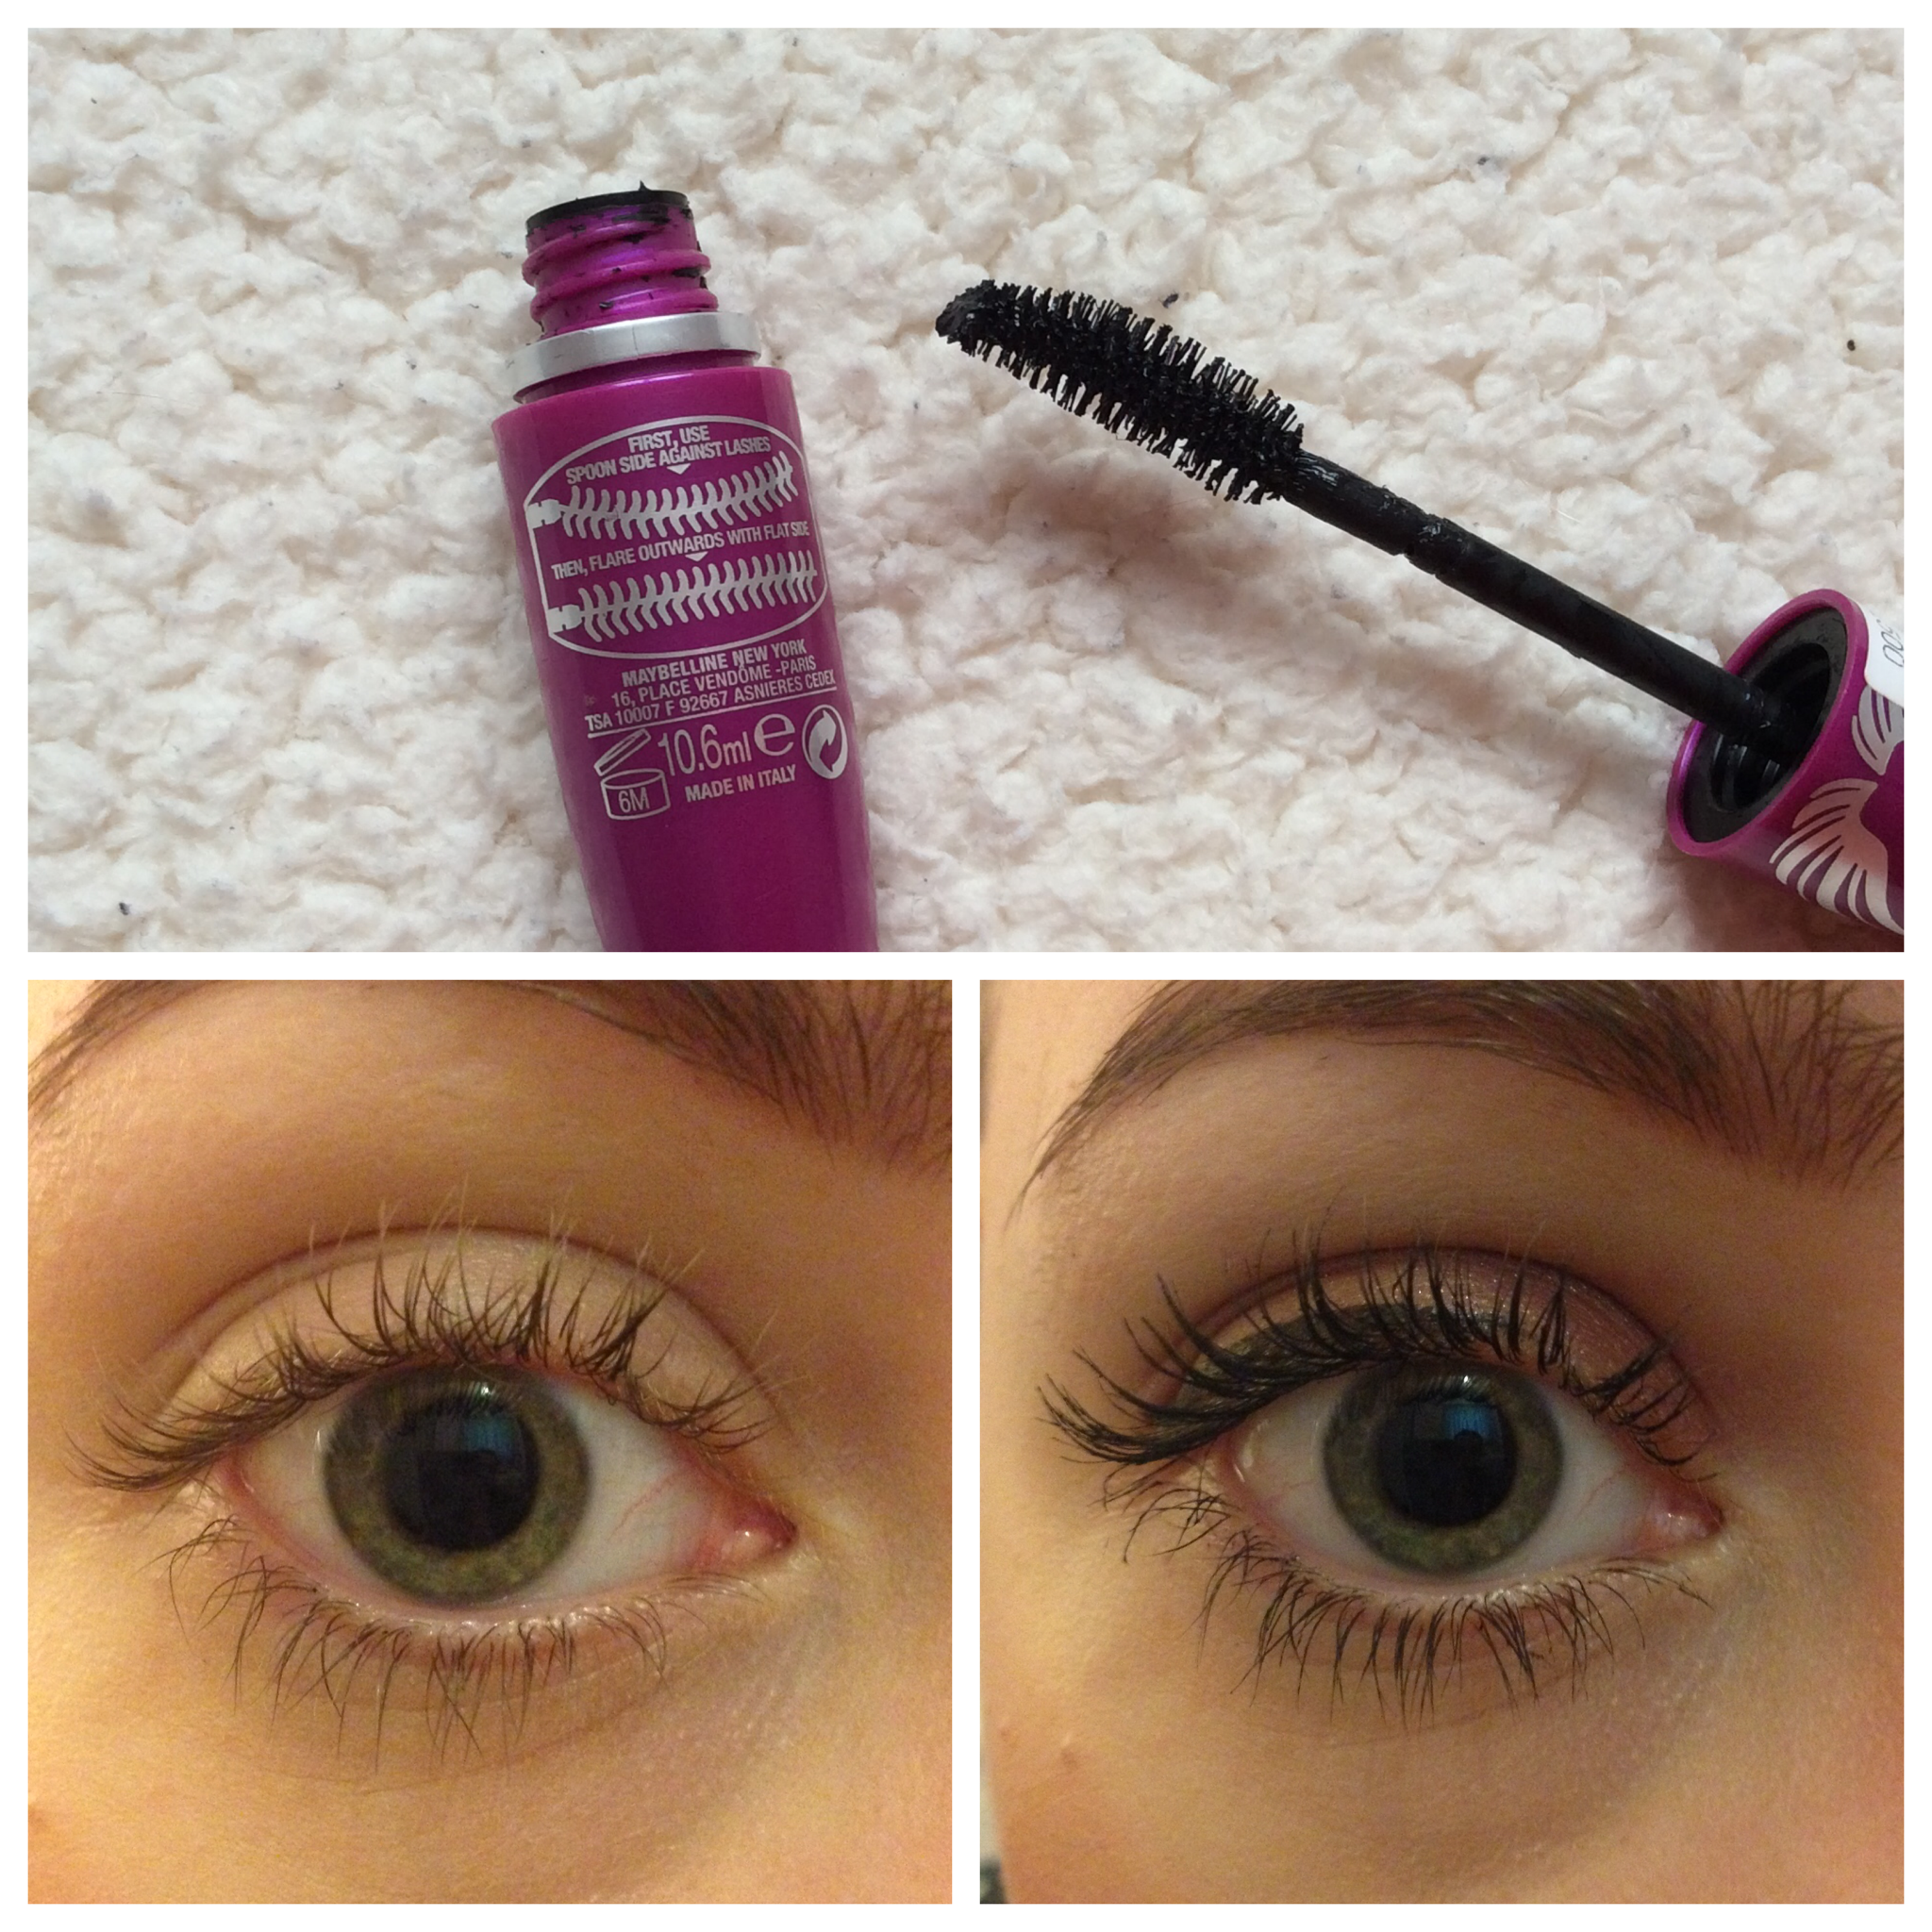 Review: Maybelline Falsies Flared Mascara – lissybeauty